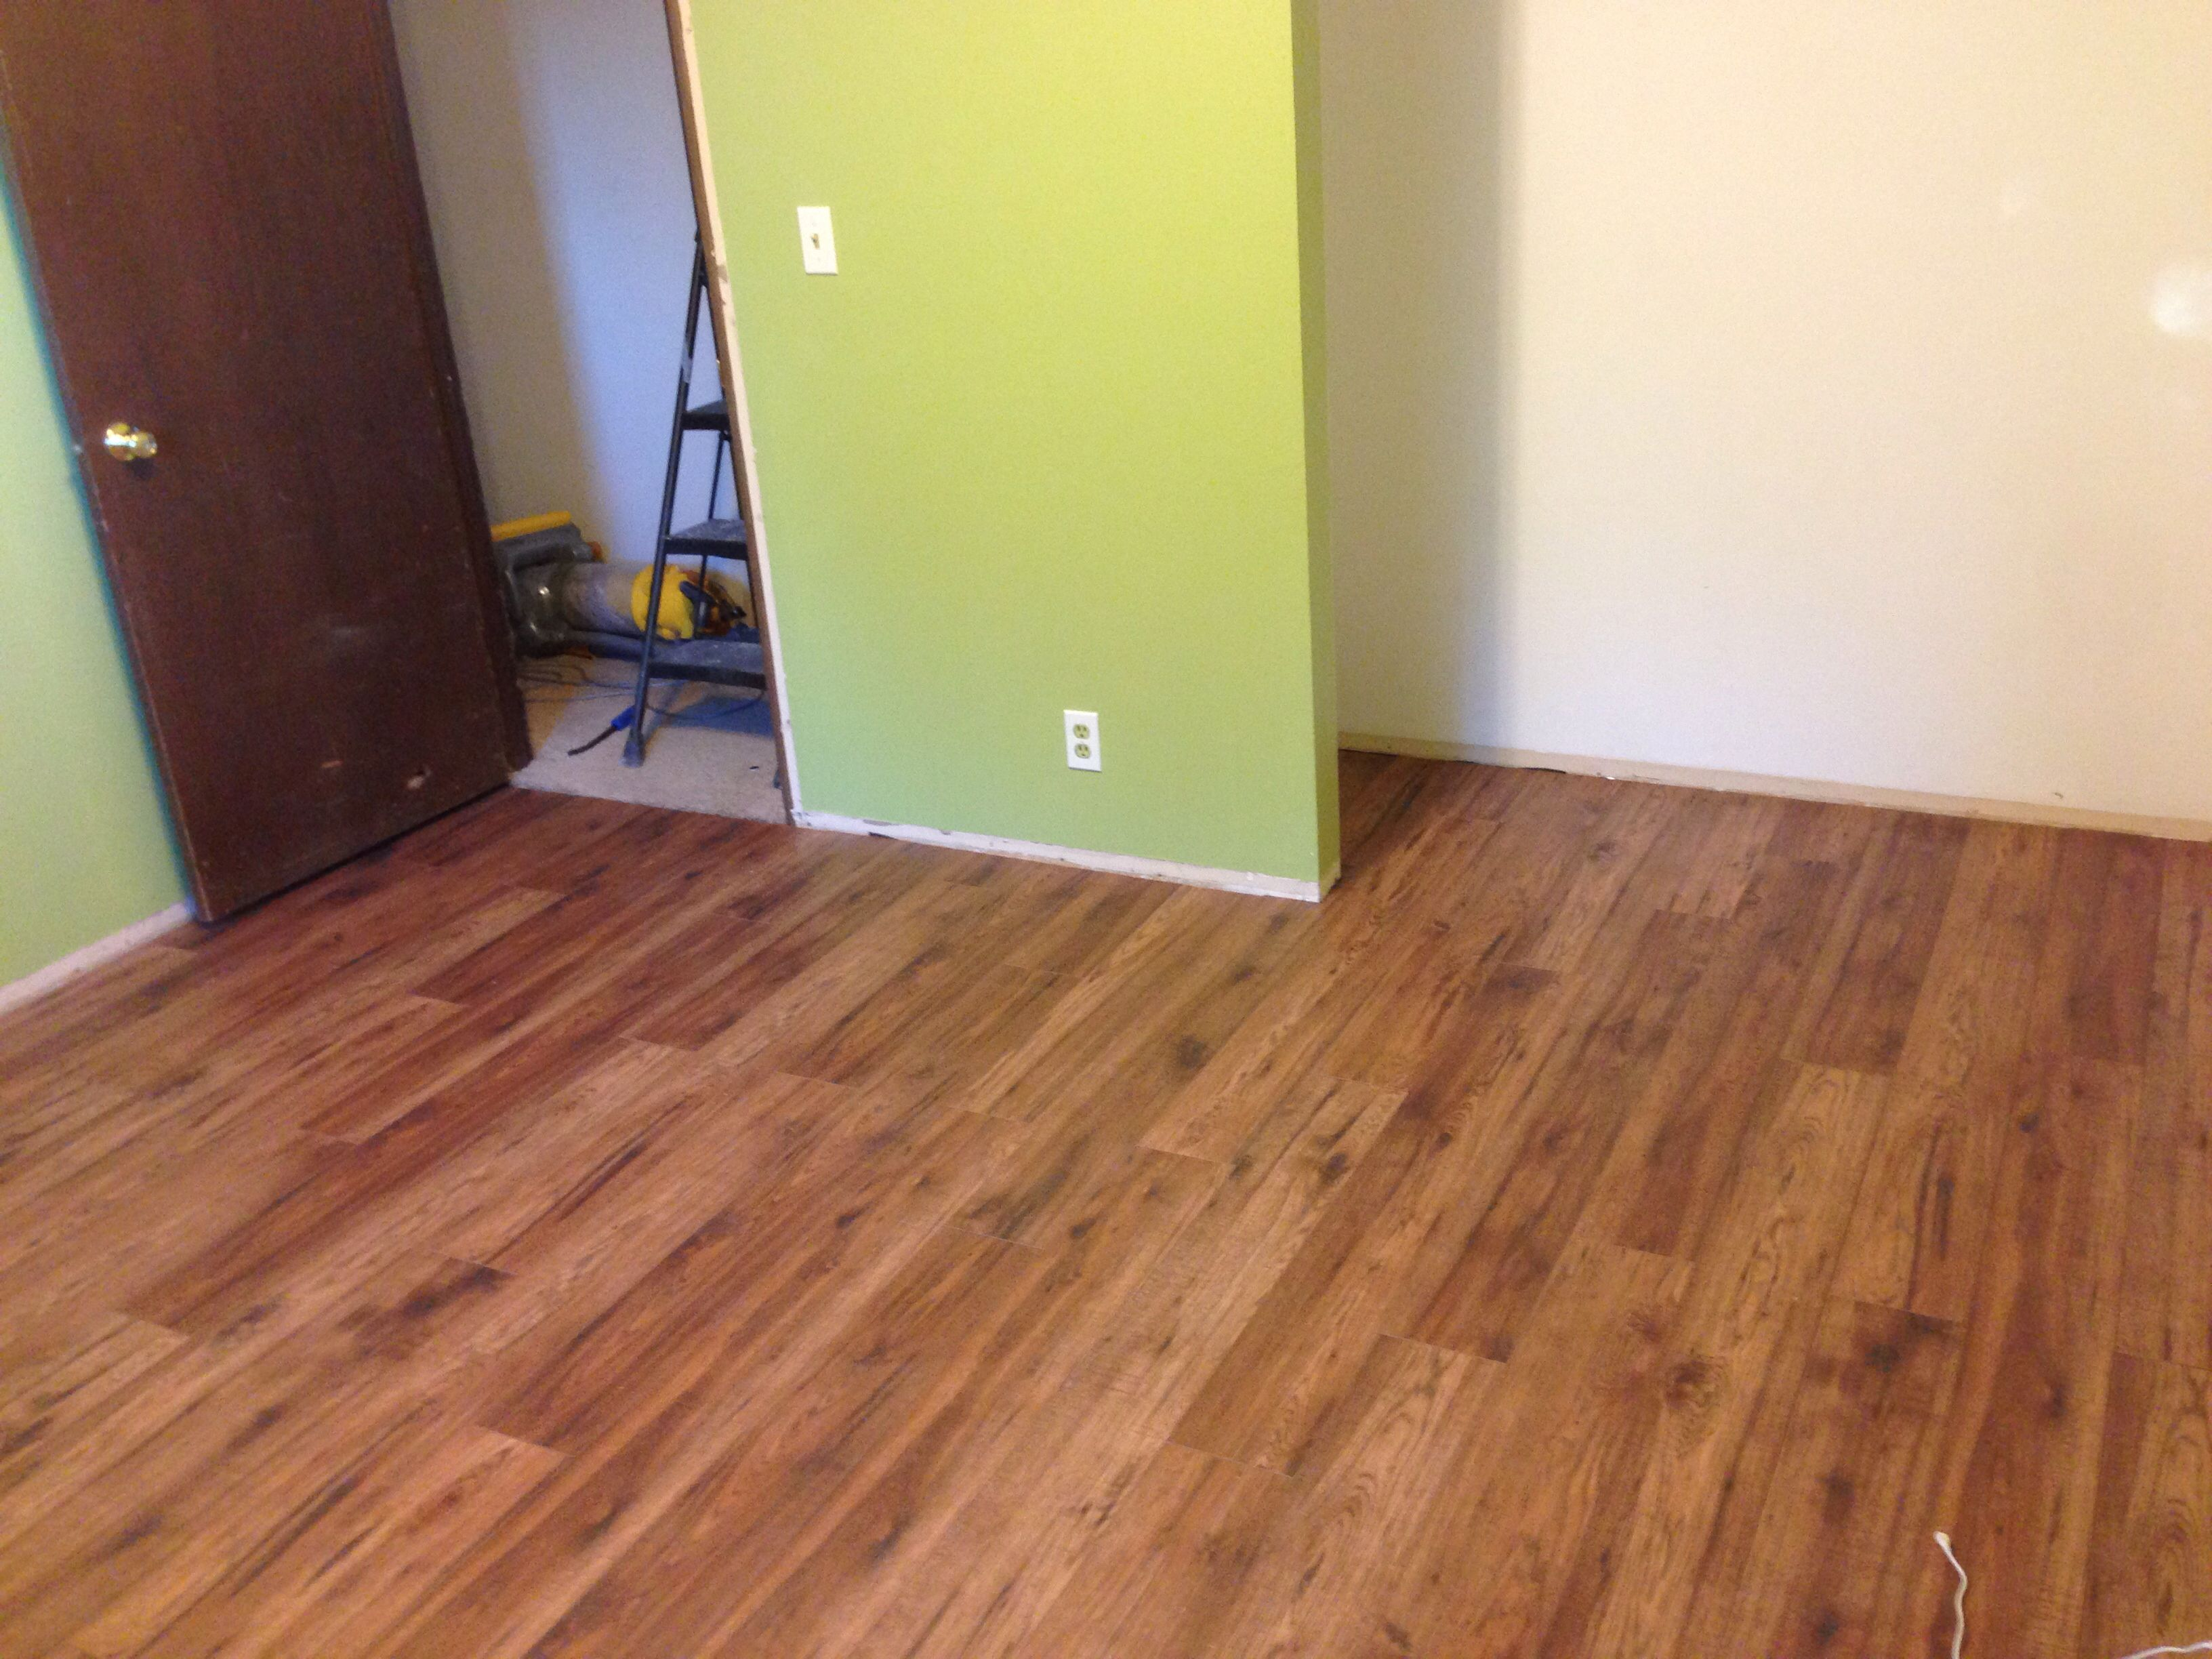 Distressed brown hickory pergo flooring and Behr s Asparagus paint